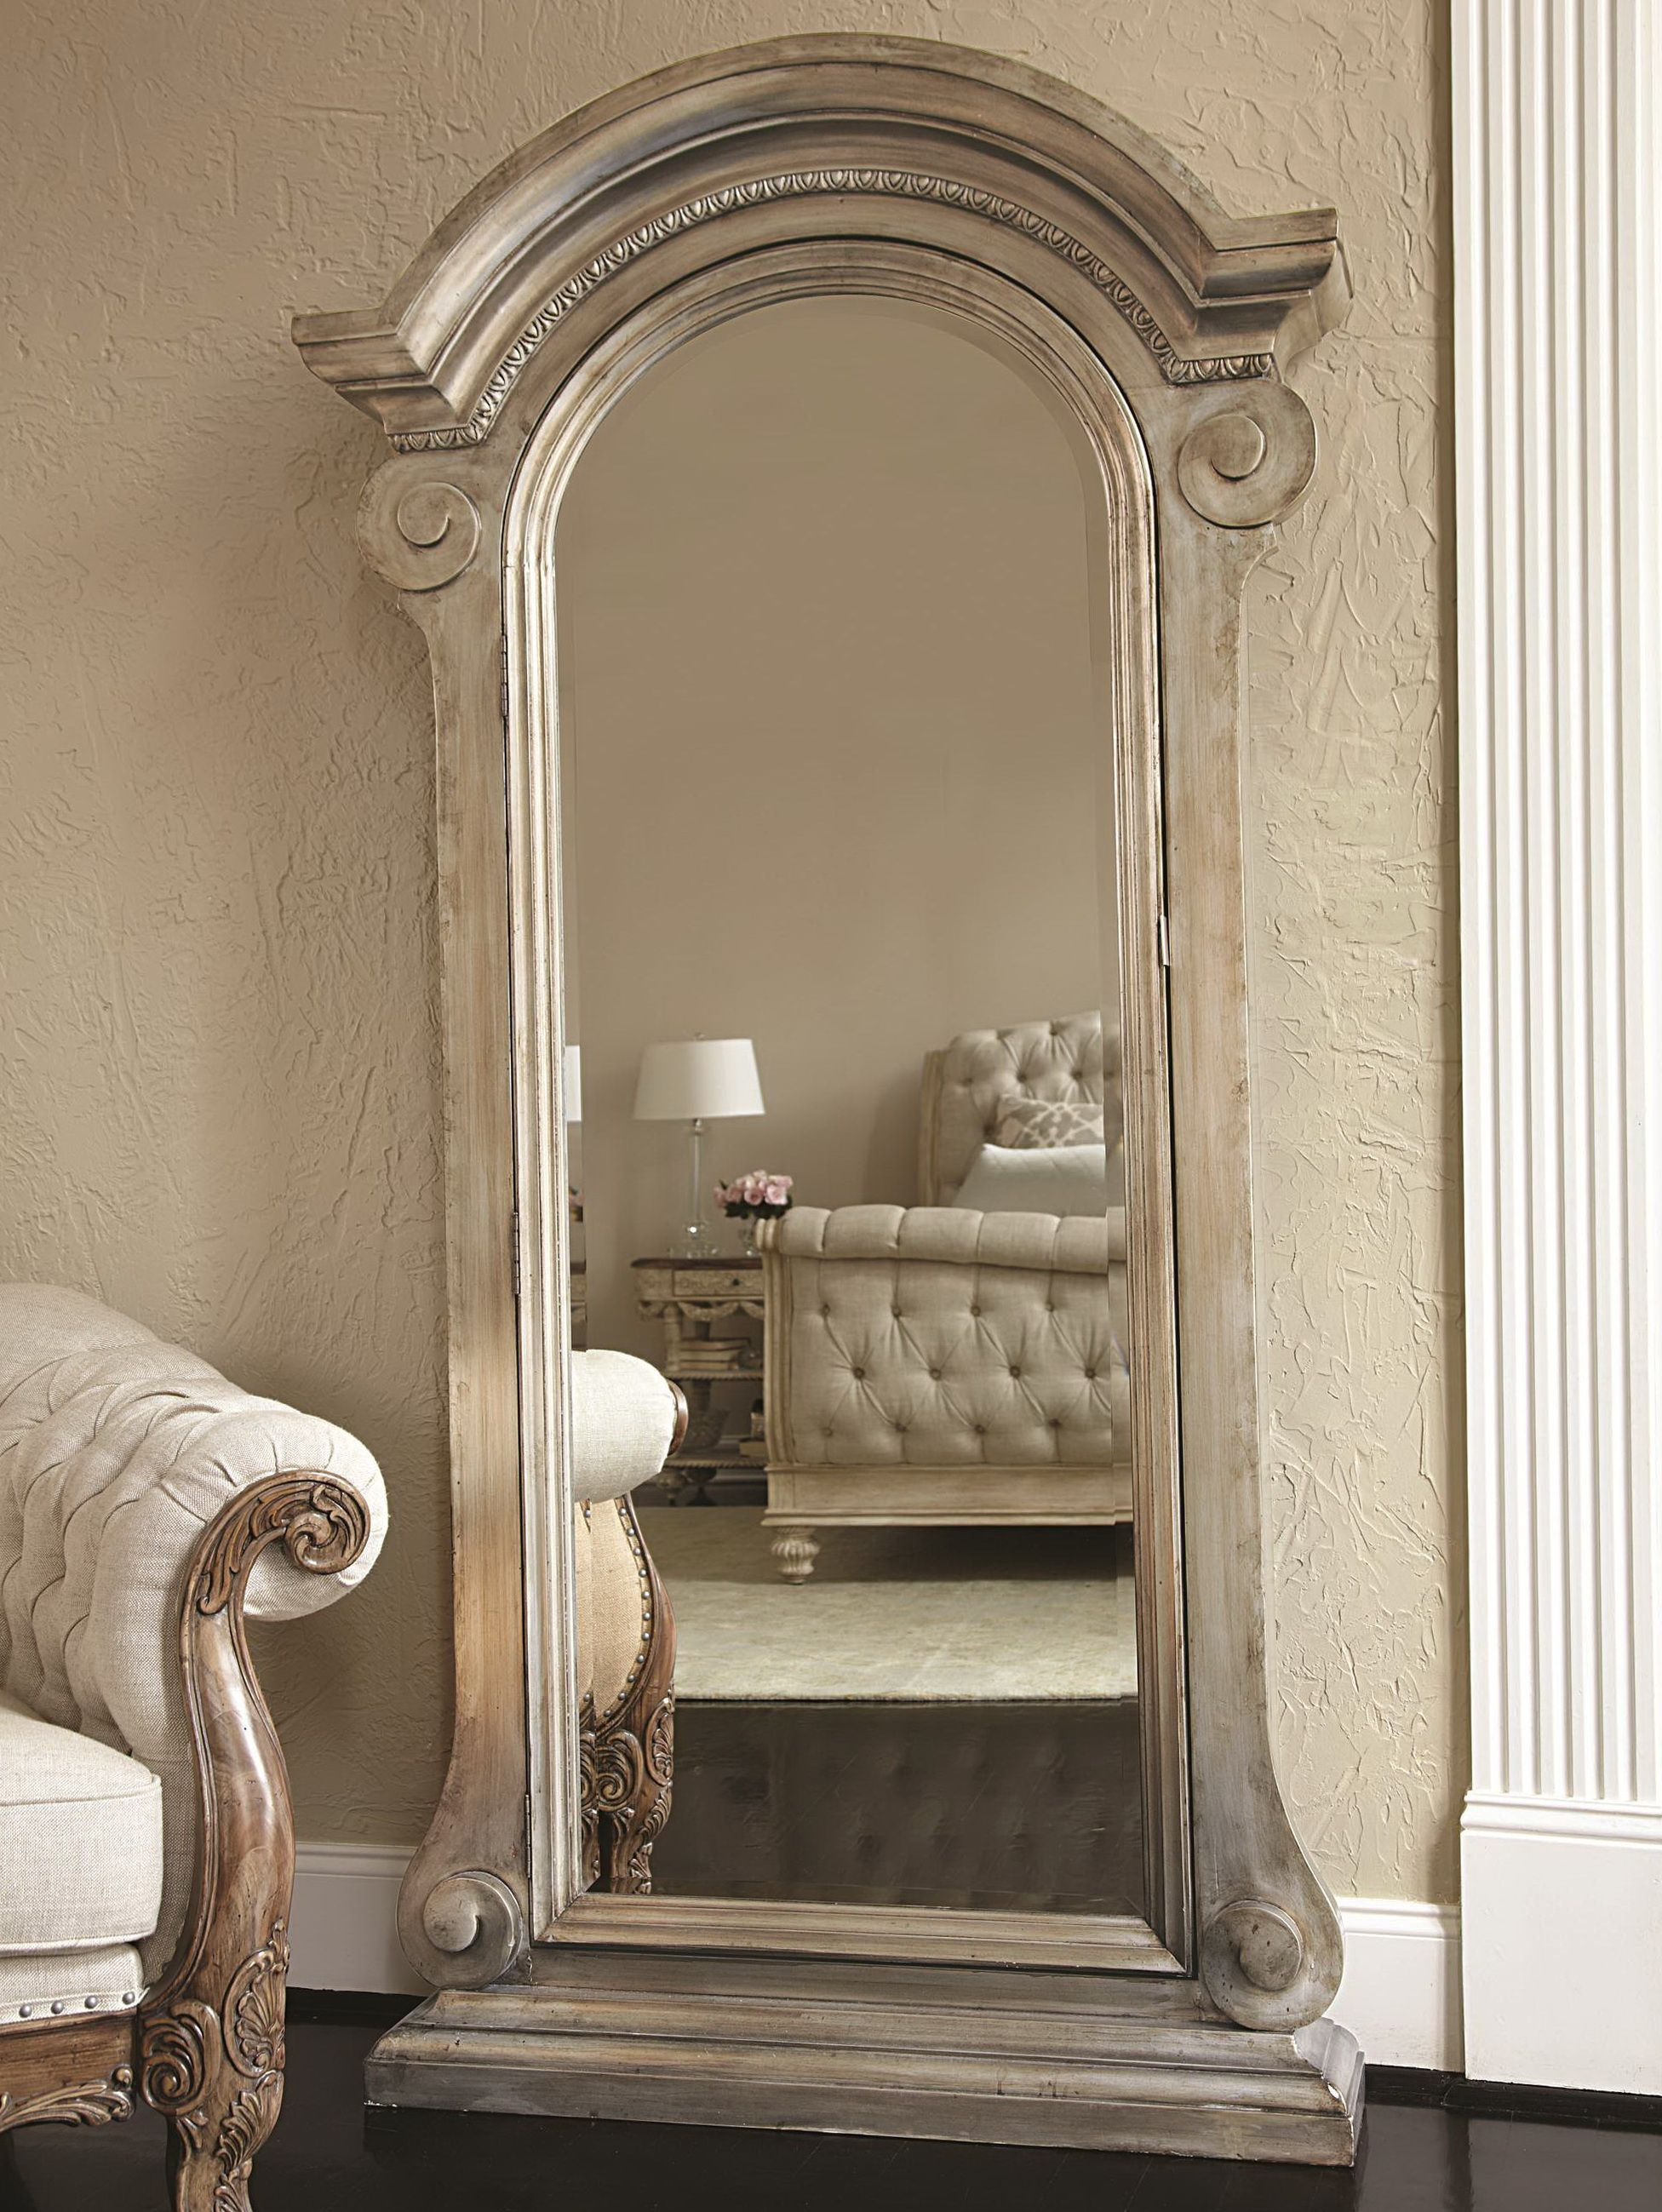 Latest Projects Sophisticated And Shabby Describe This ...